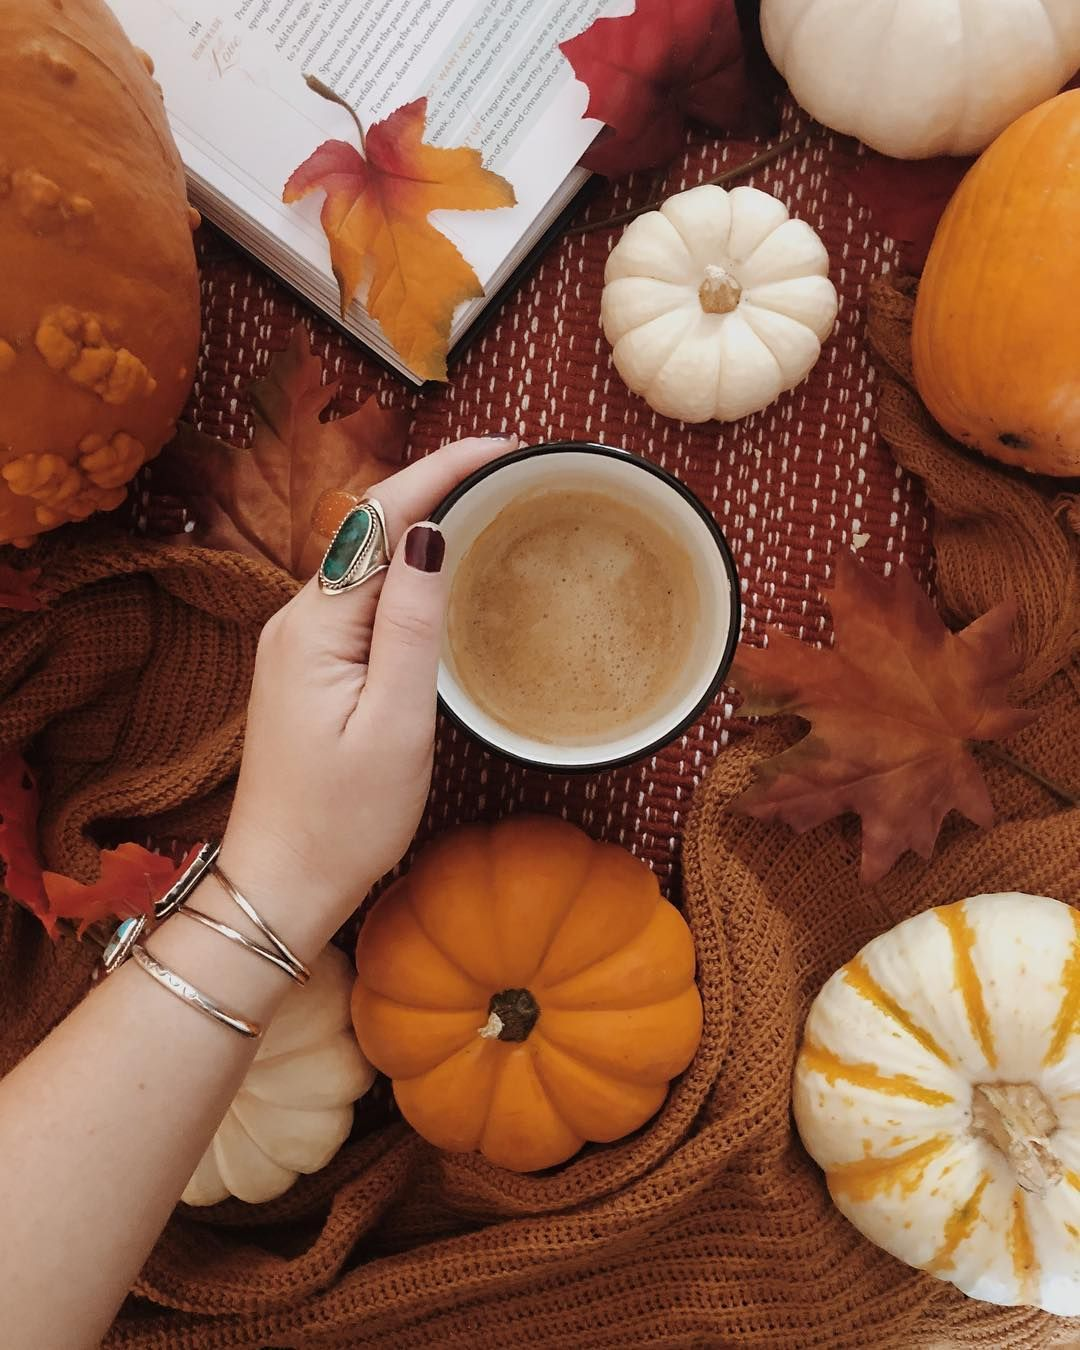 Rosalynne Love On Instagram Happy National Coffee Day Today I M Sharing With Images Pumpkin Spice Creamer Recipe Pumpkin Spice Creamer Creamer Recipe